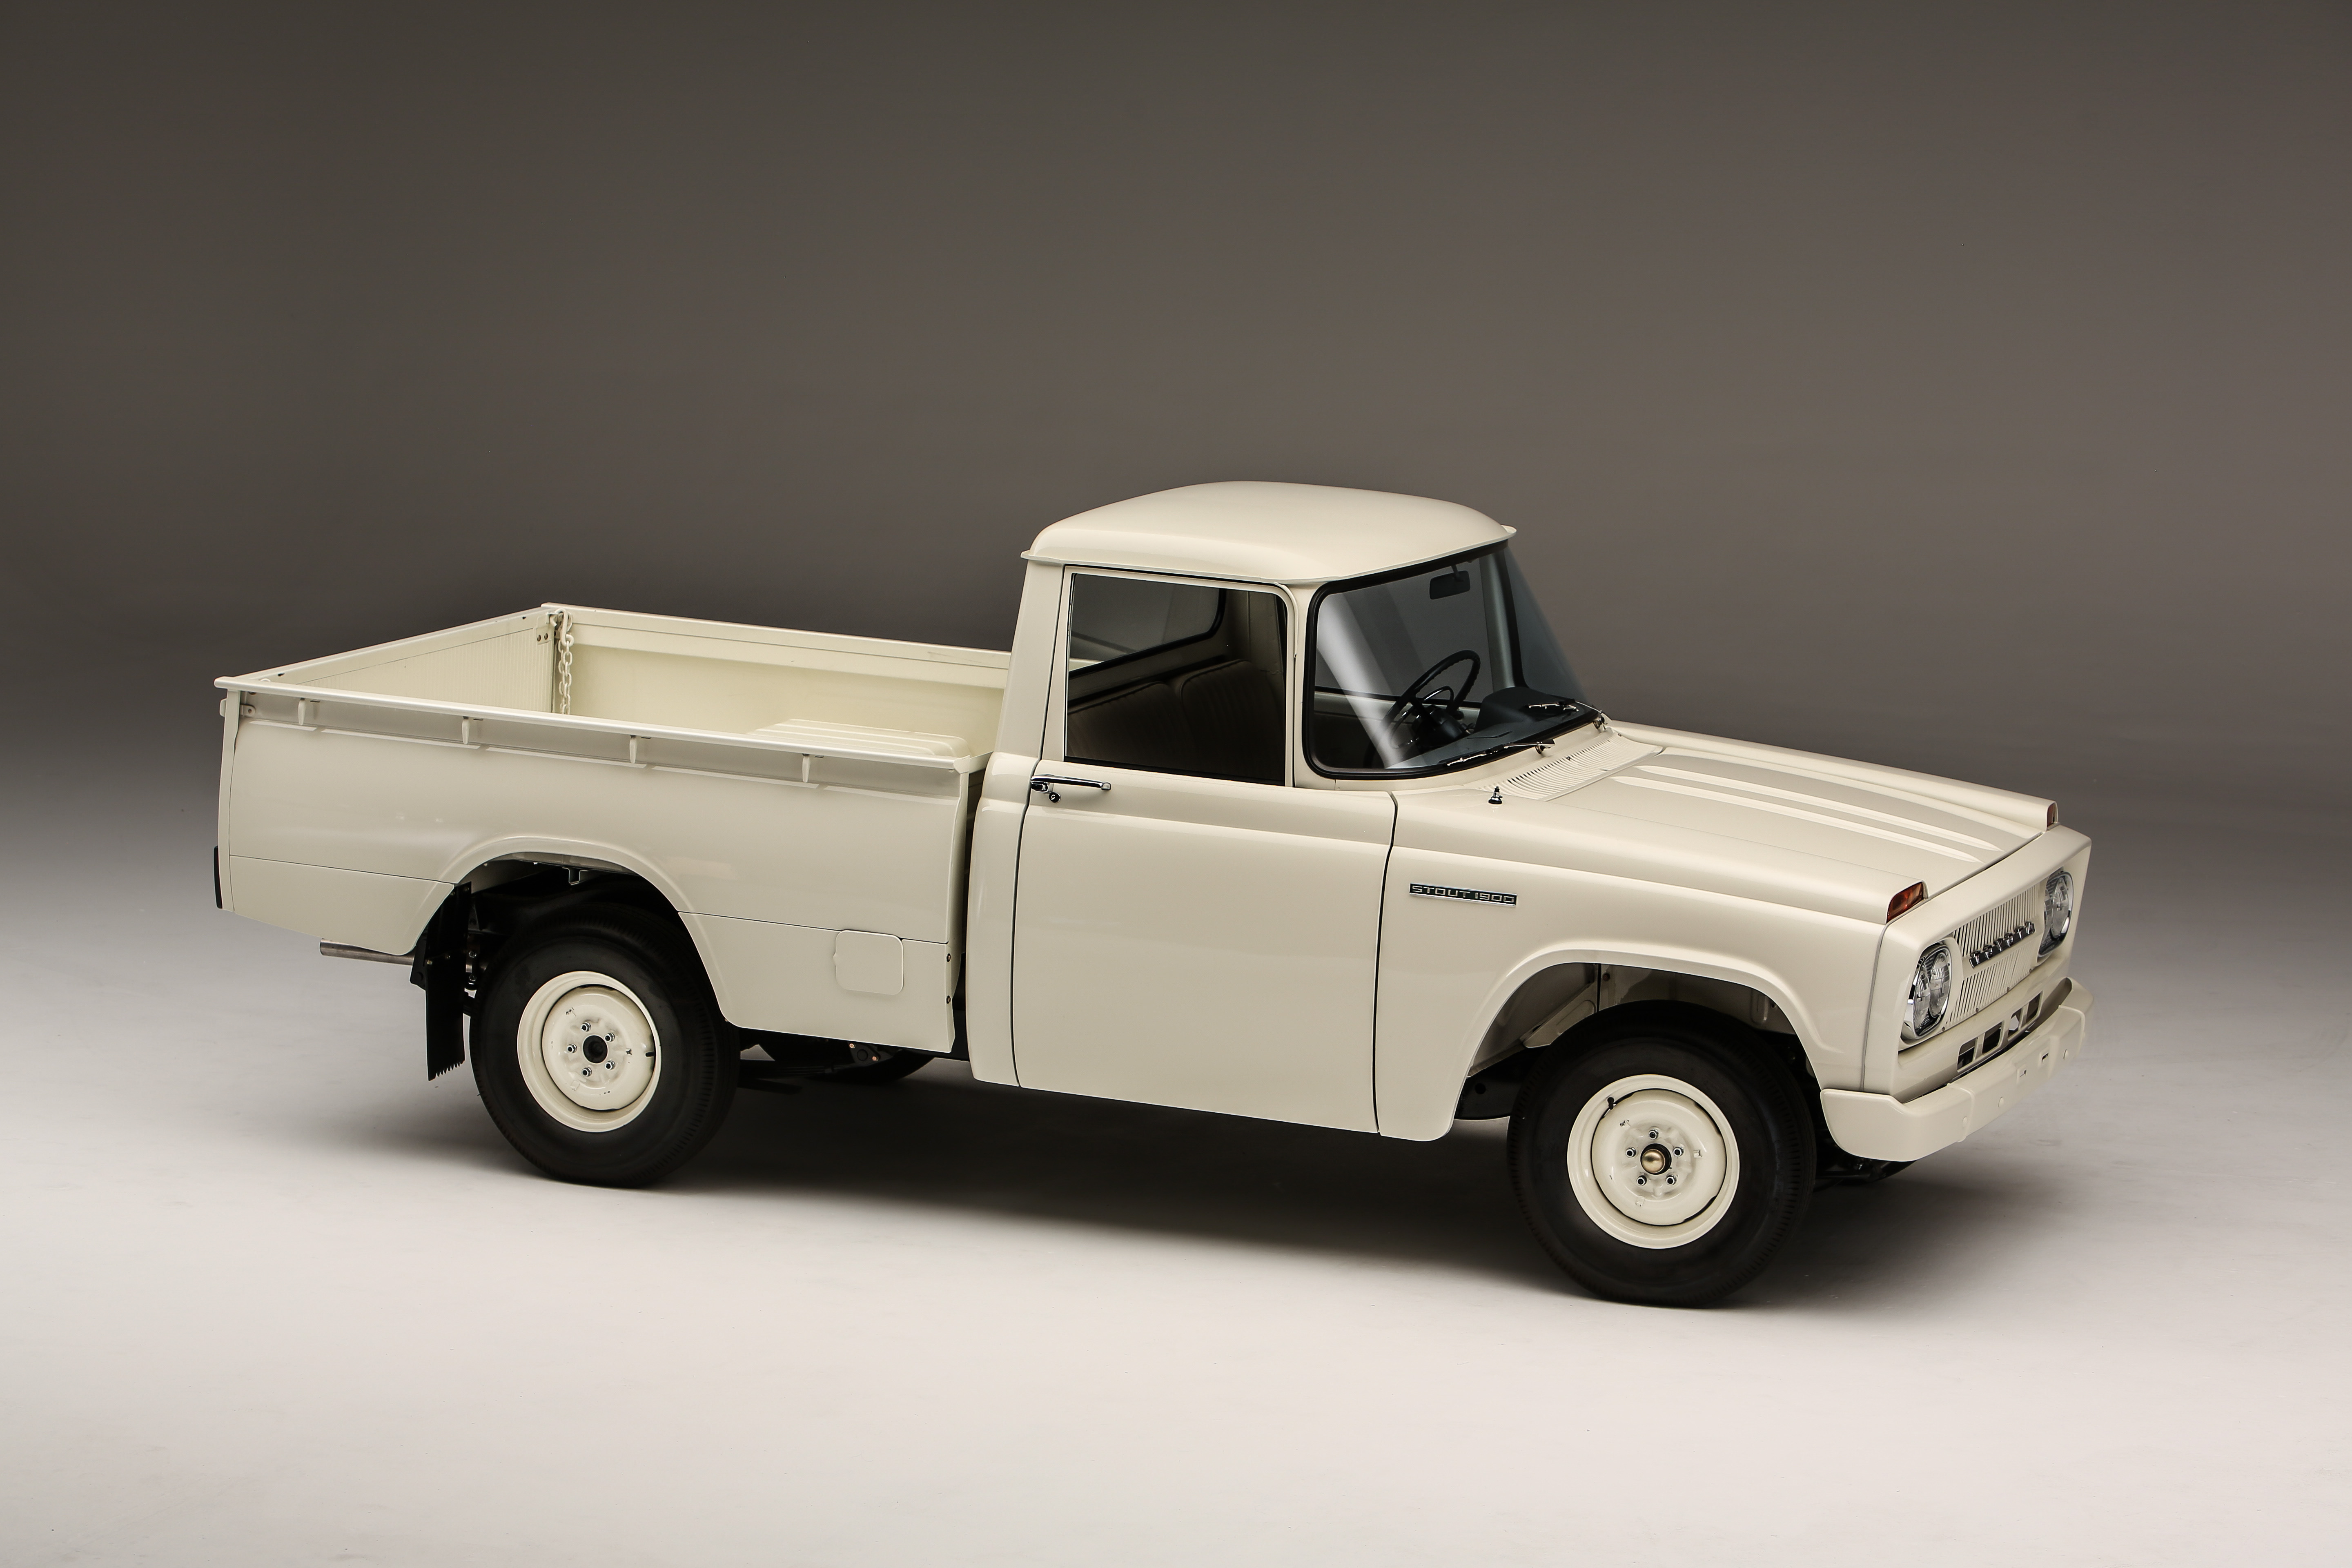 The Toyota Stout 4 2 Is Introduced To American Market This First Pickup Available From In United States